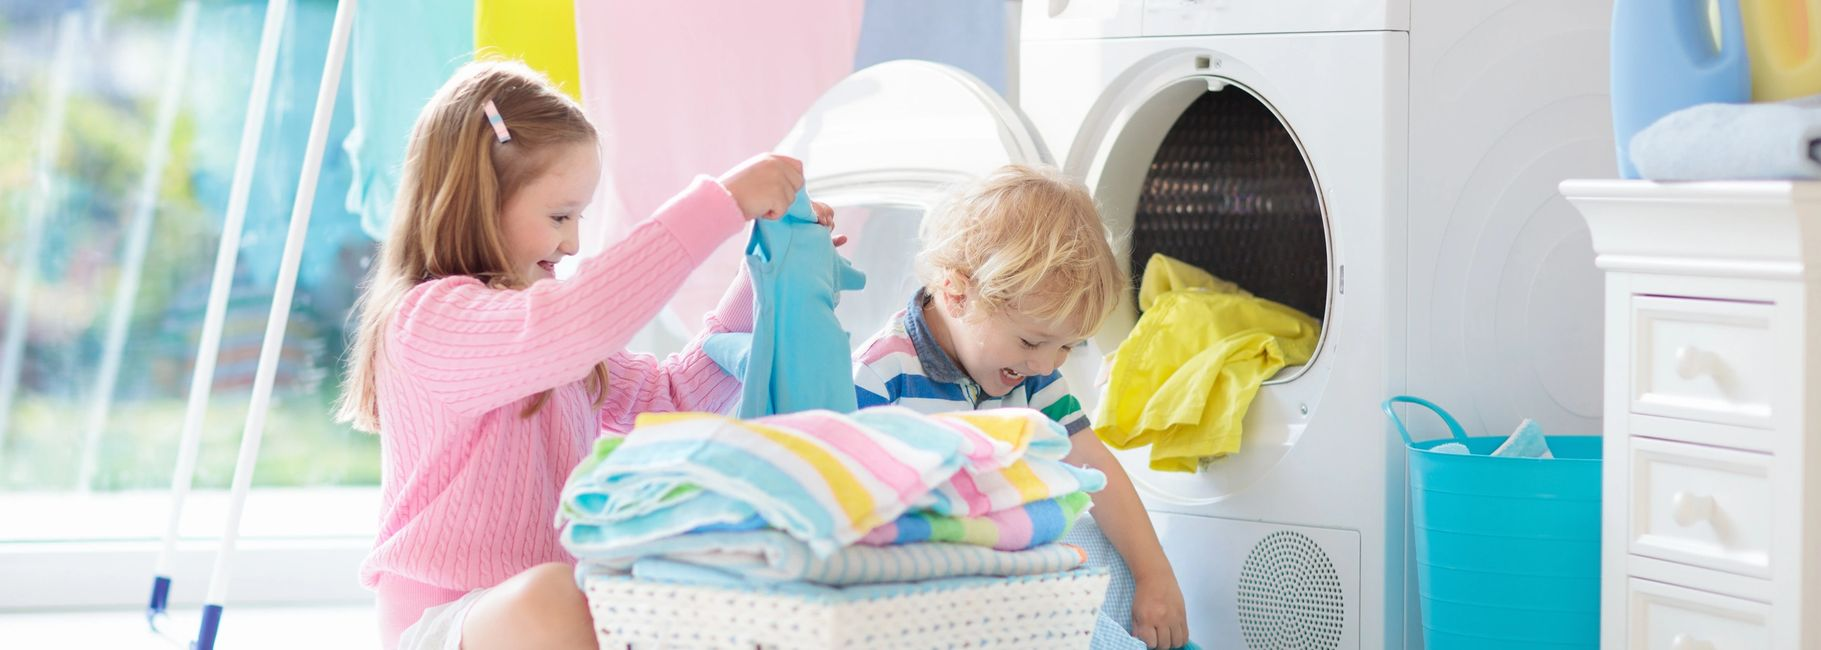 Kids Folding Laundry by Bosch Dryer and smiling